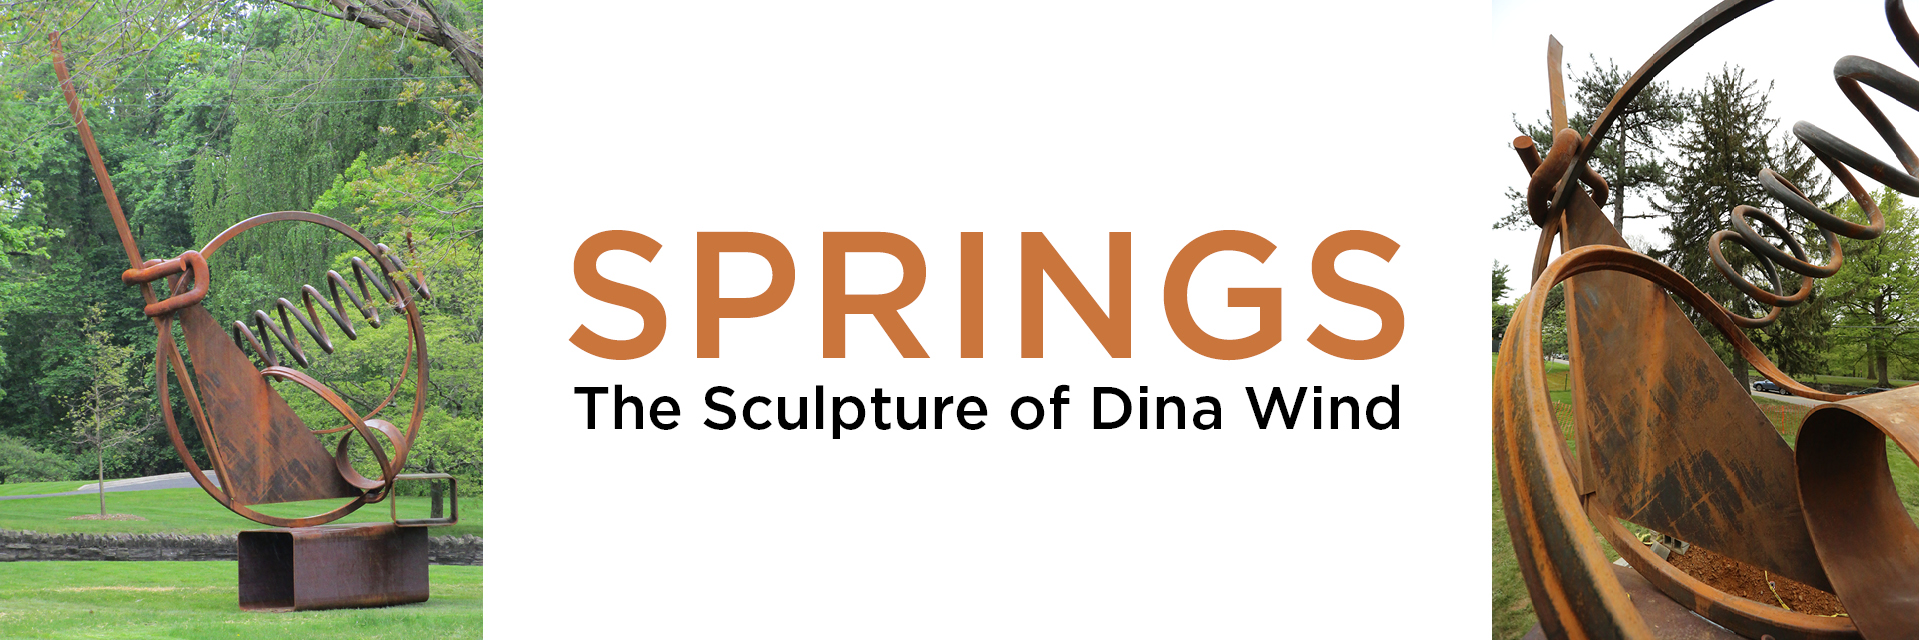 Springs: The Sculpture of Dina Wind